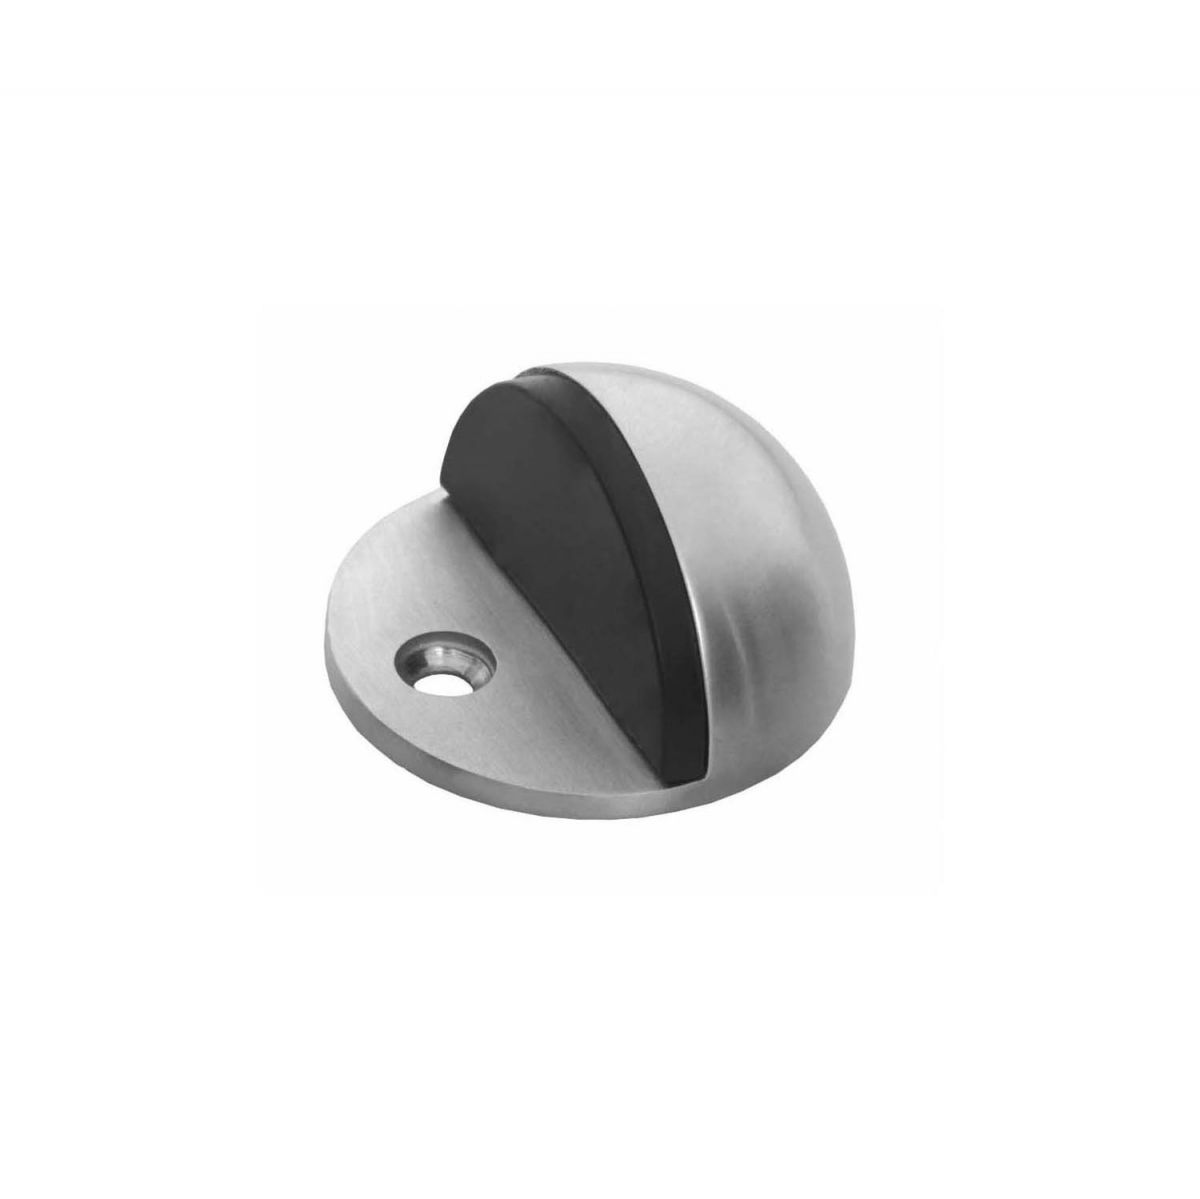 stainless steel doorstop pot